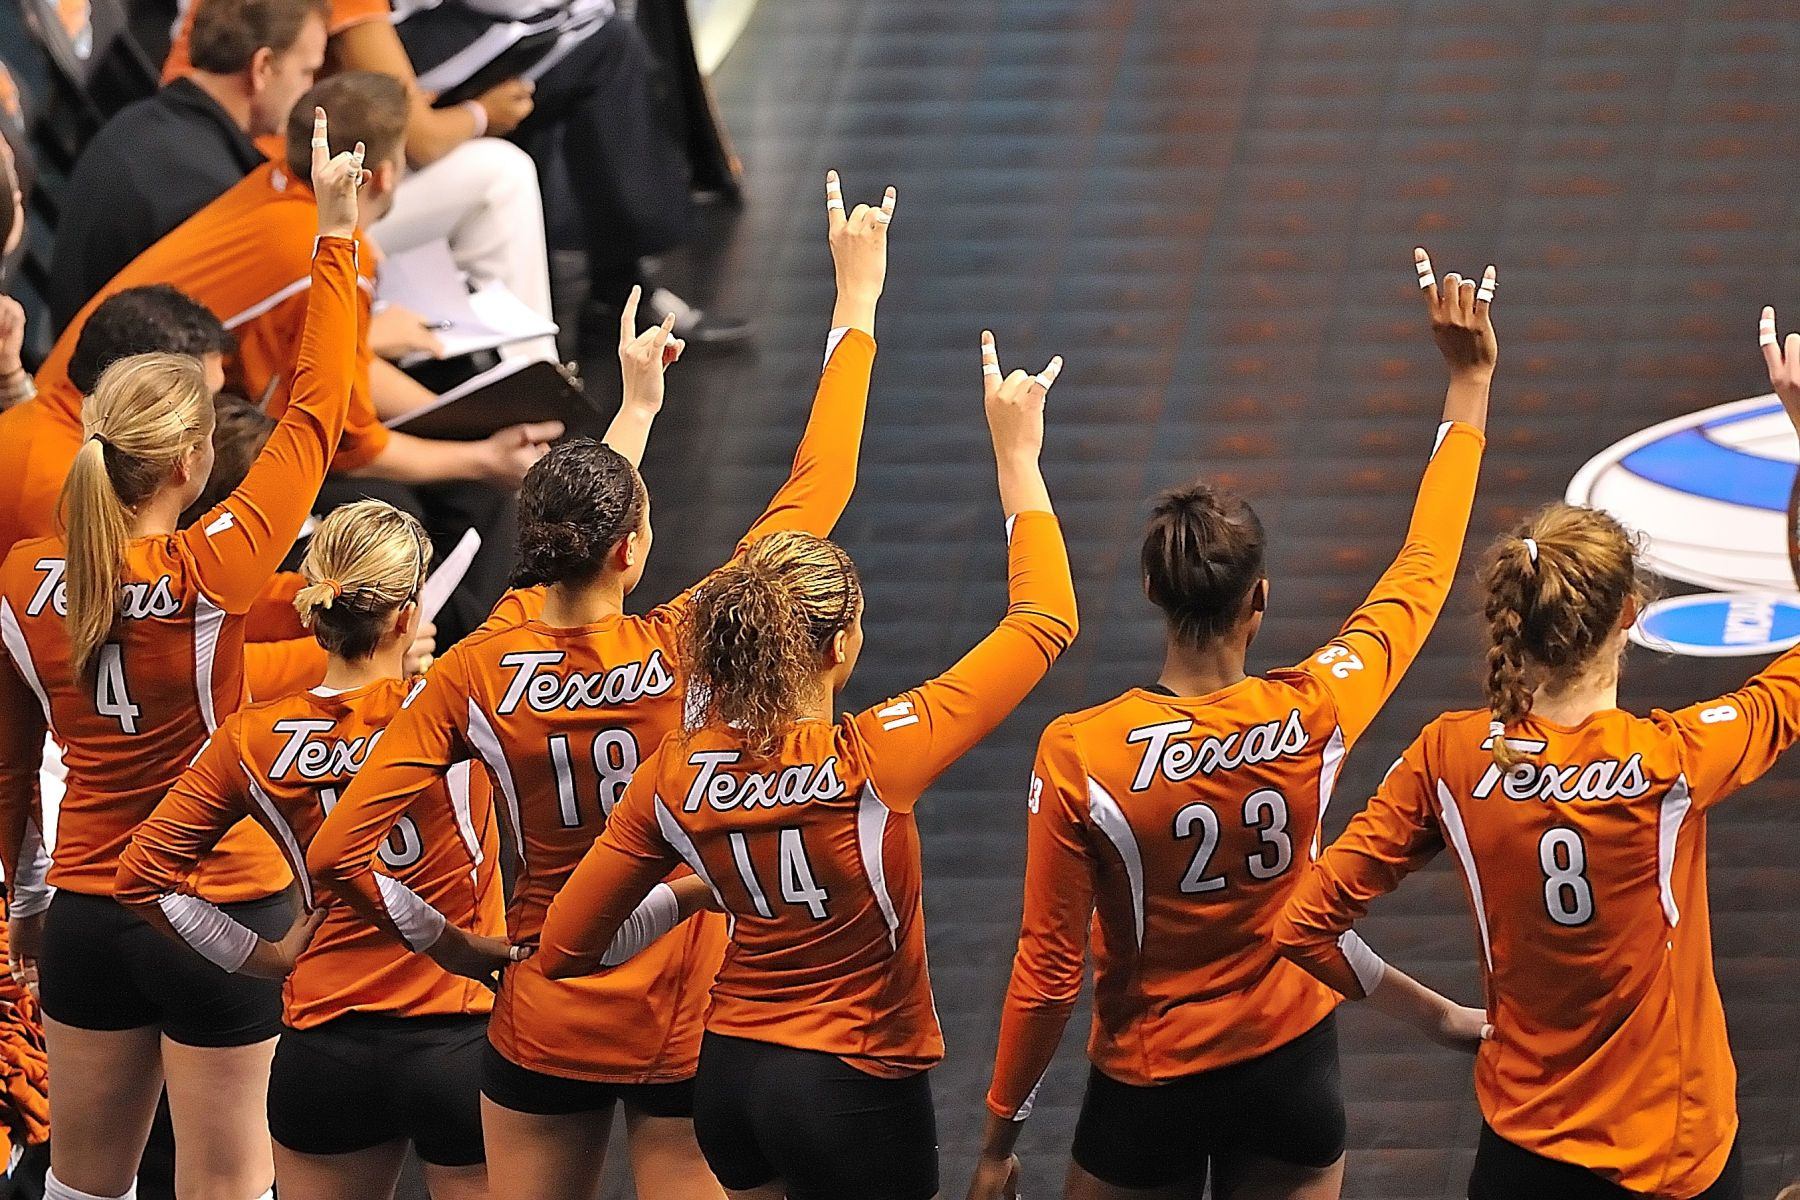 NCAA VOLLEYBALL: DEC 19 Texas vs. Penn State